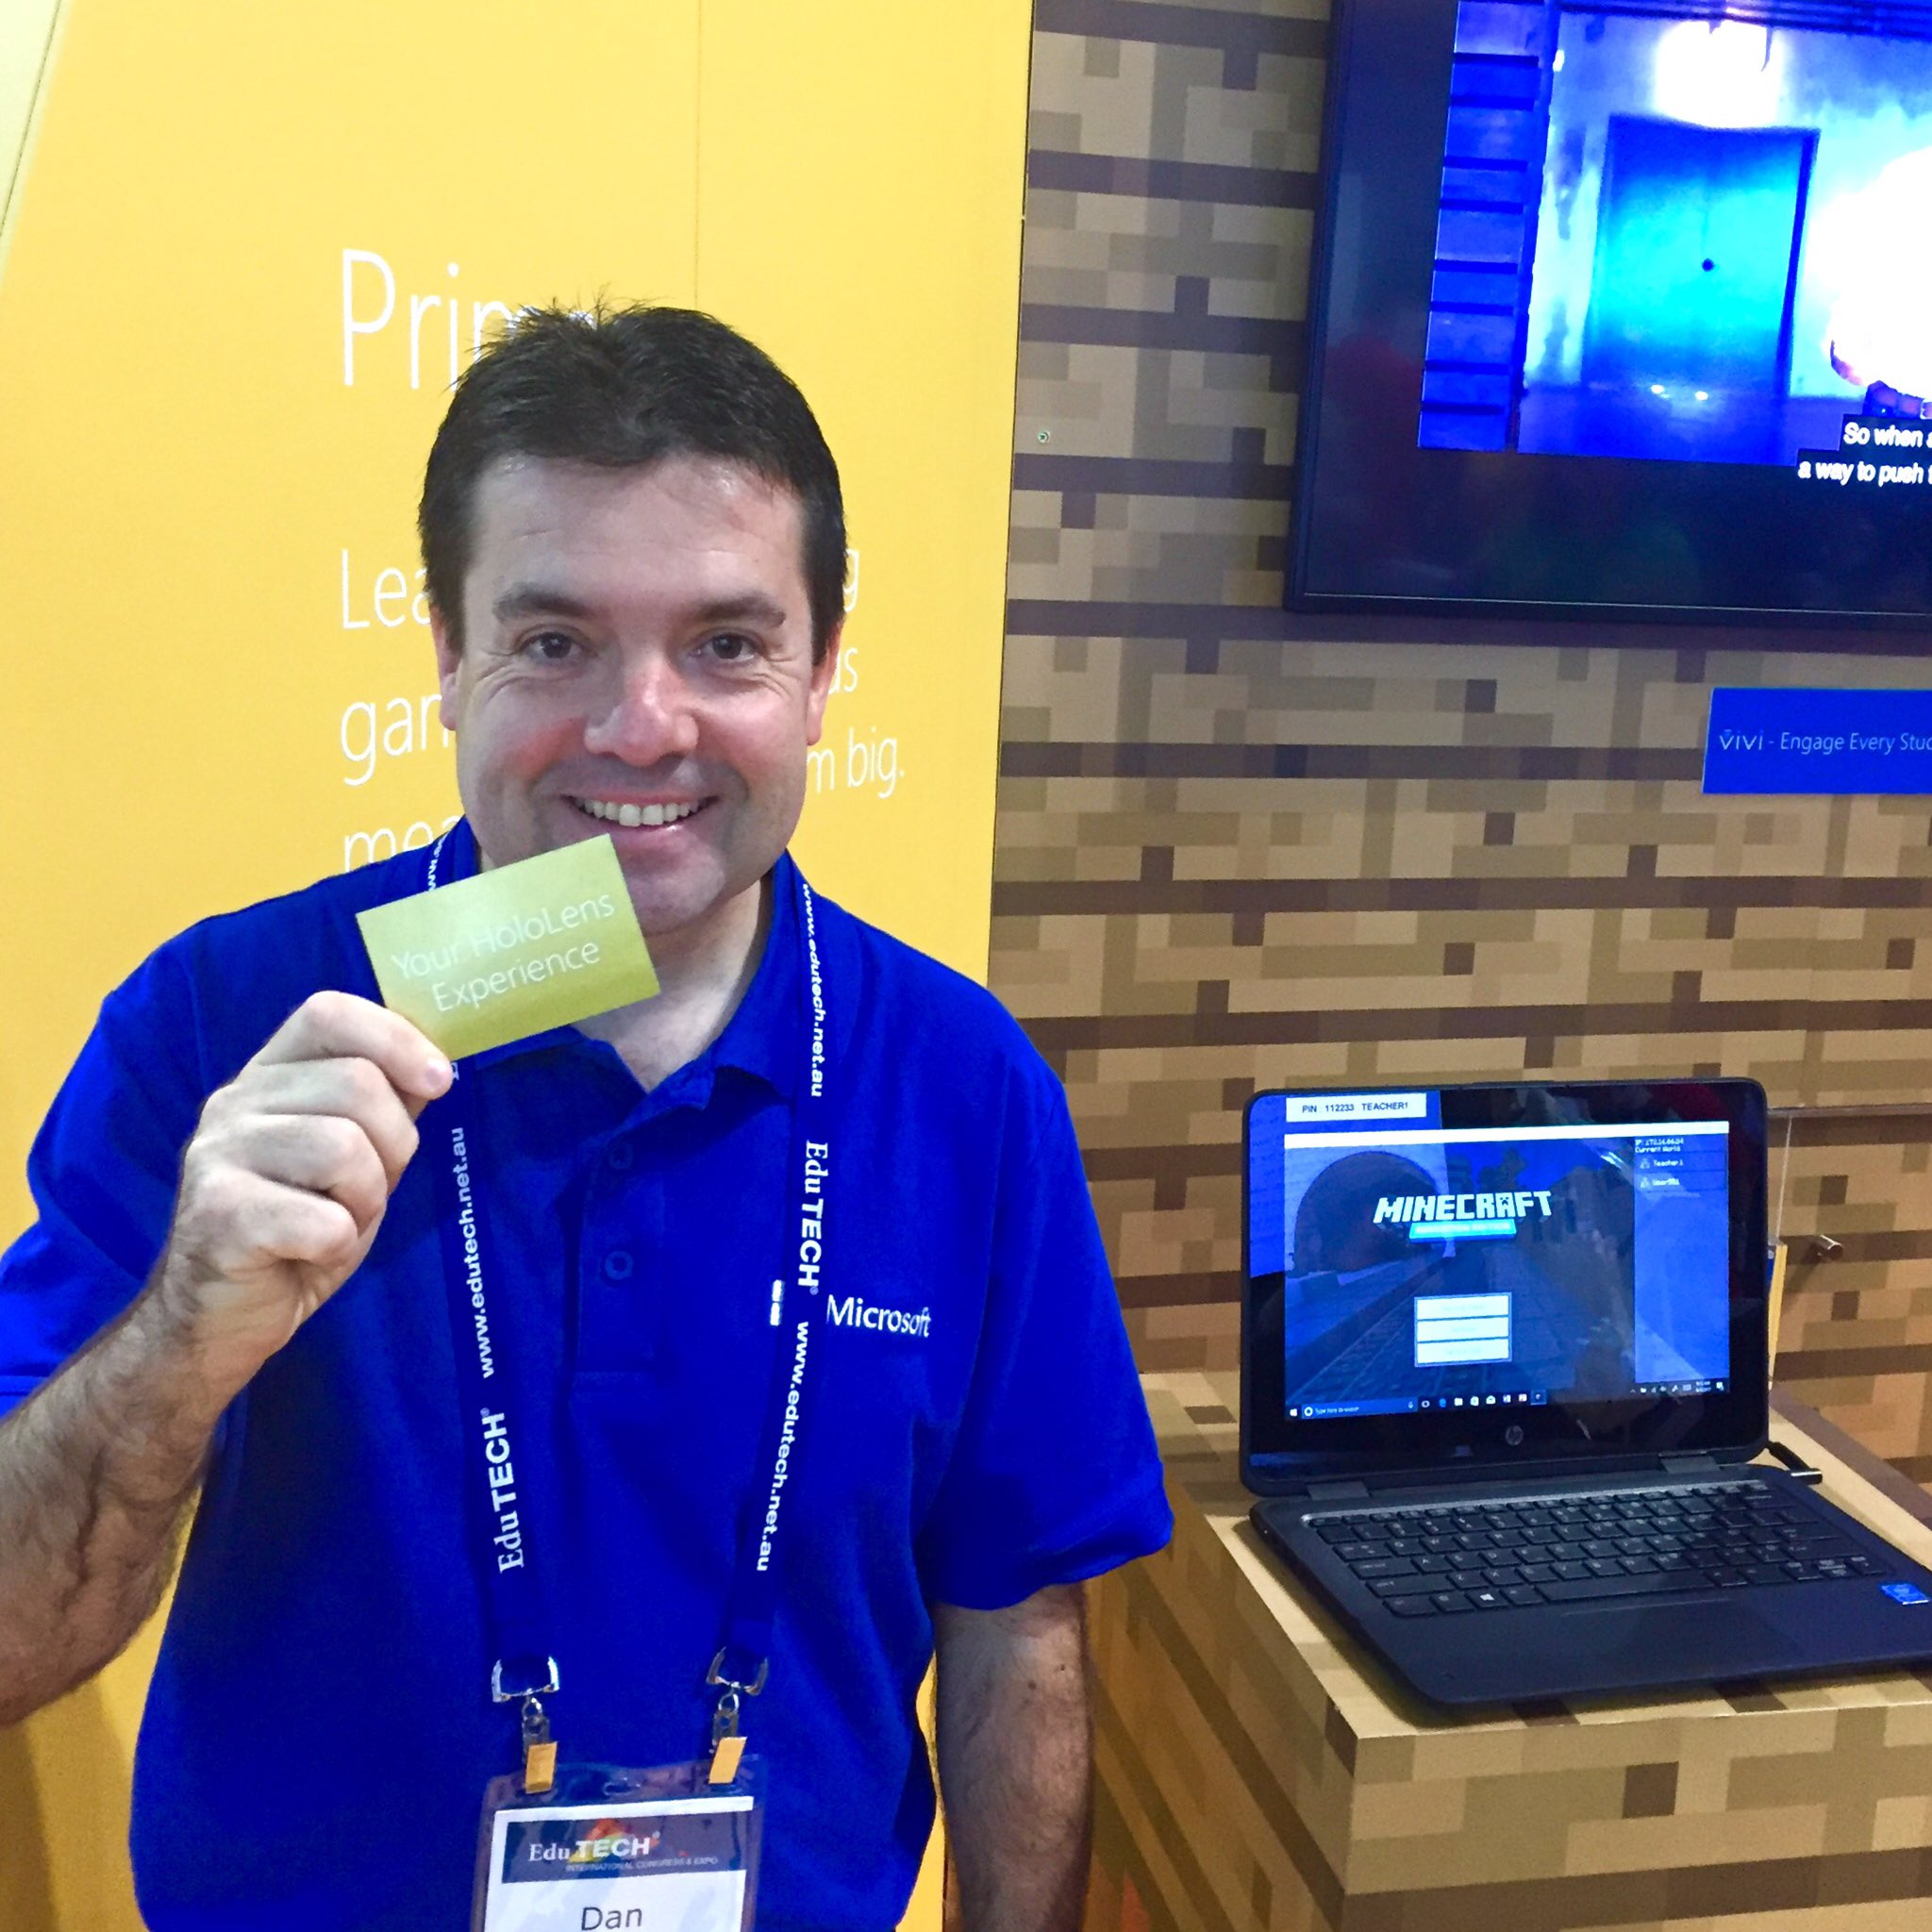 WIN a @HoloLens demo today! Be the first to come our stand and grab the Golden Ticket from @dan_bowen !! @EduTECH_AU https://t.co/qQTdQfJmqf